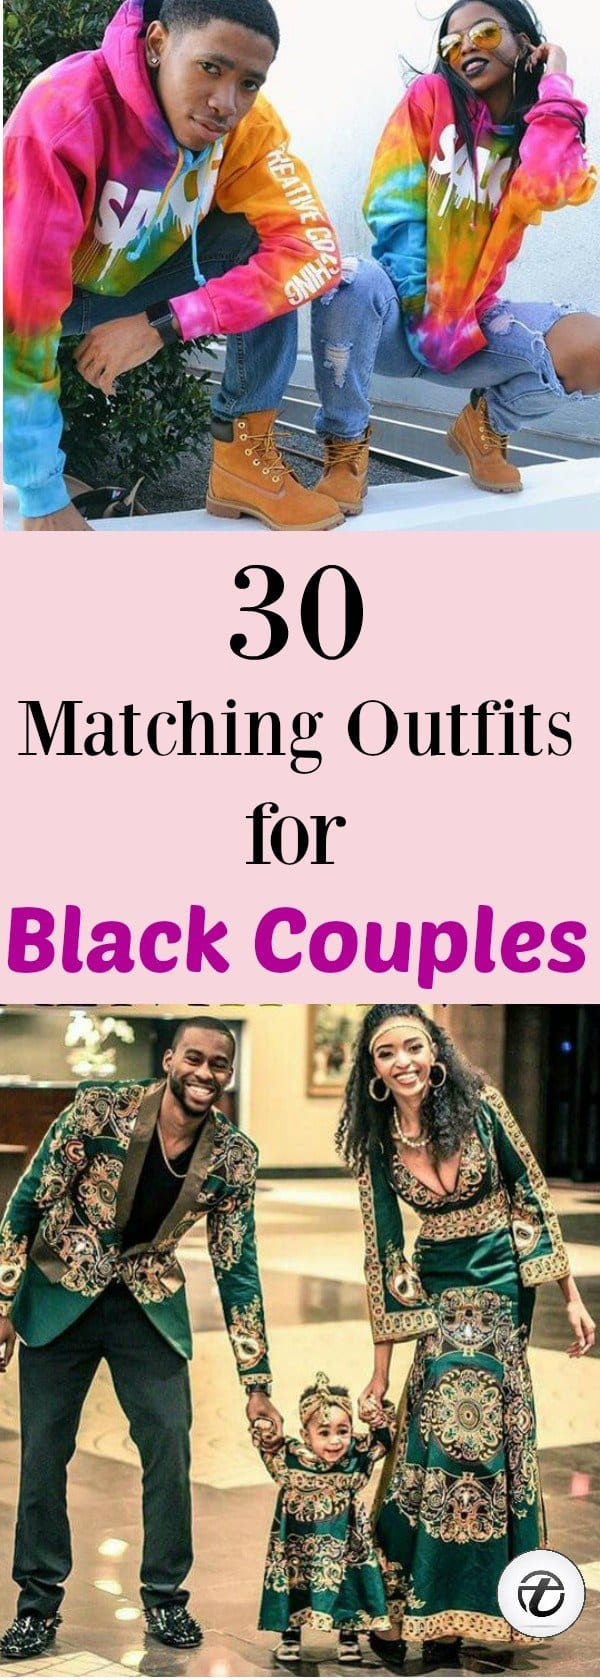 Matching Outfits for Black Couples (1)